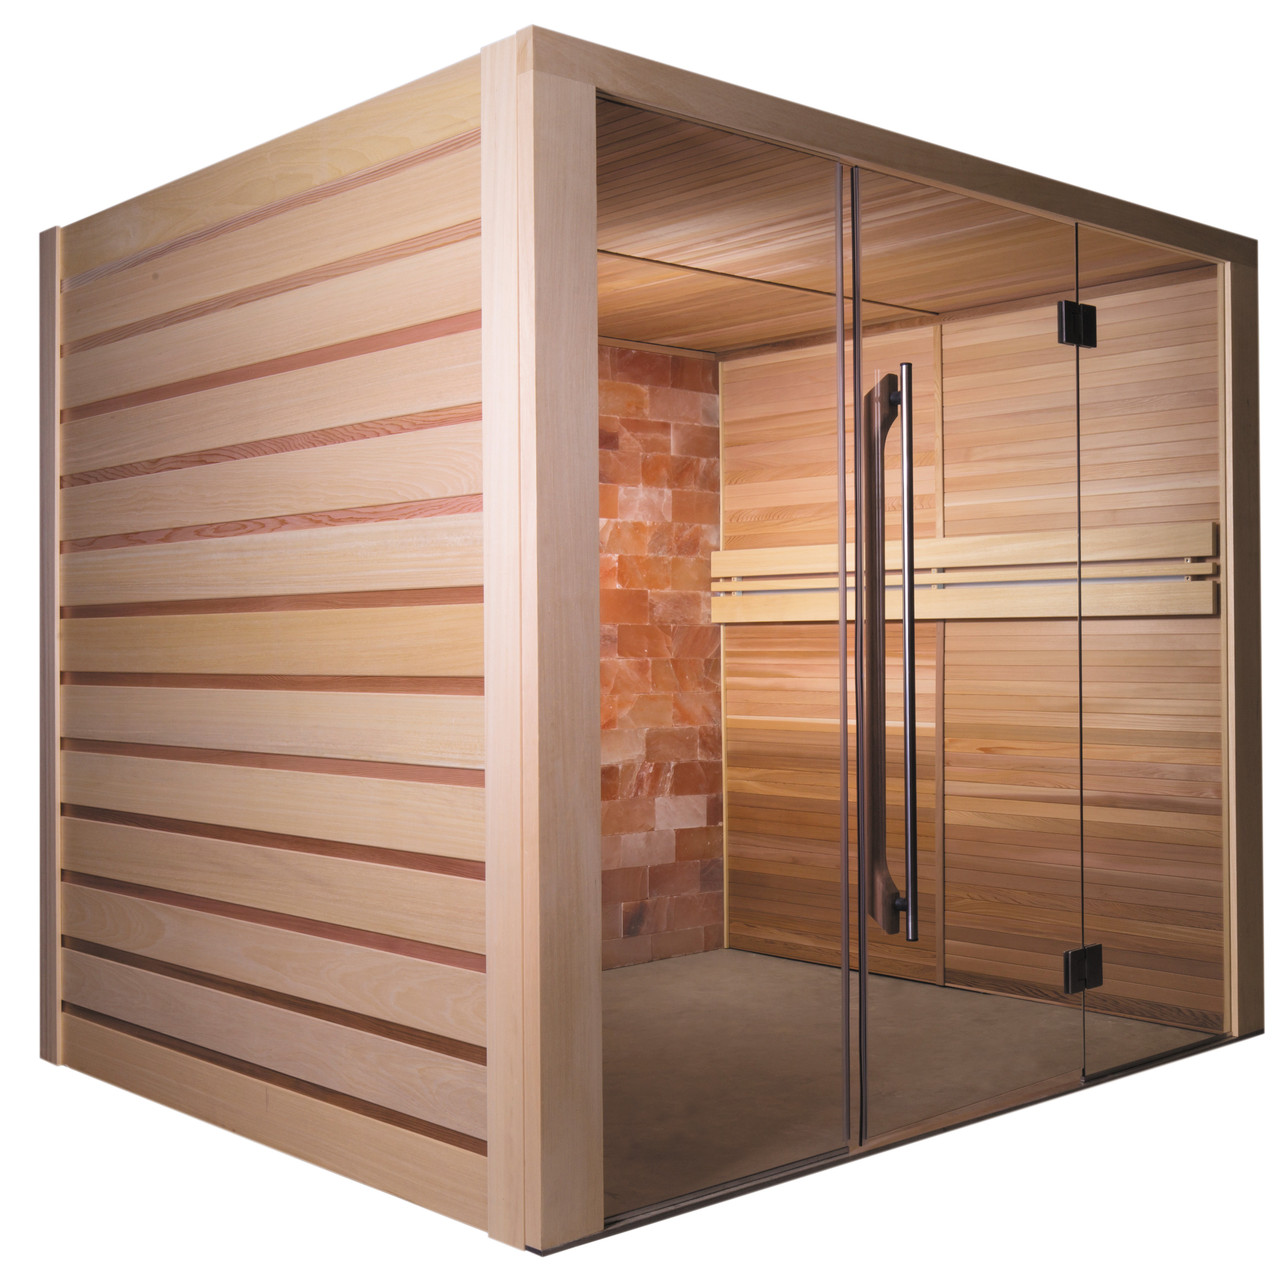 vente installation sauna cabine infrarouge maboutiquespas fabrication vente installation. Black Bedroom Furniture Sets. Home Design Ideas